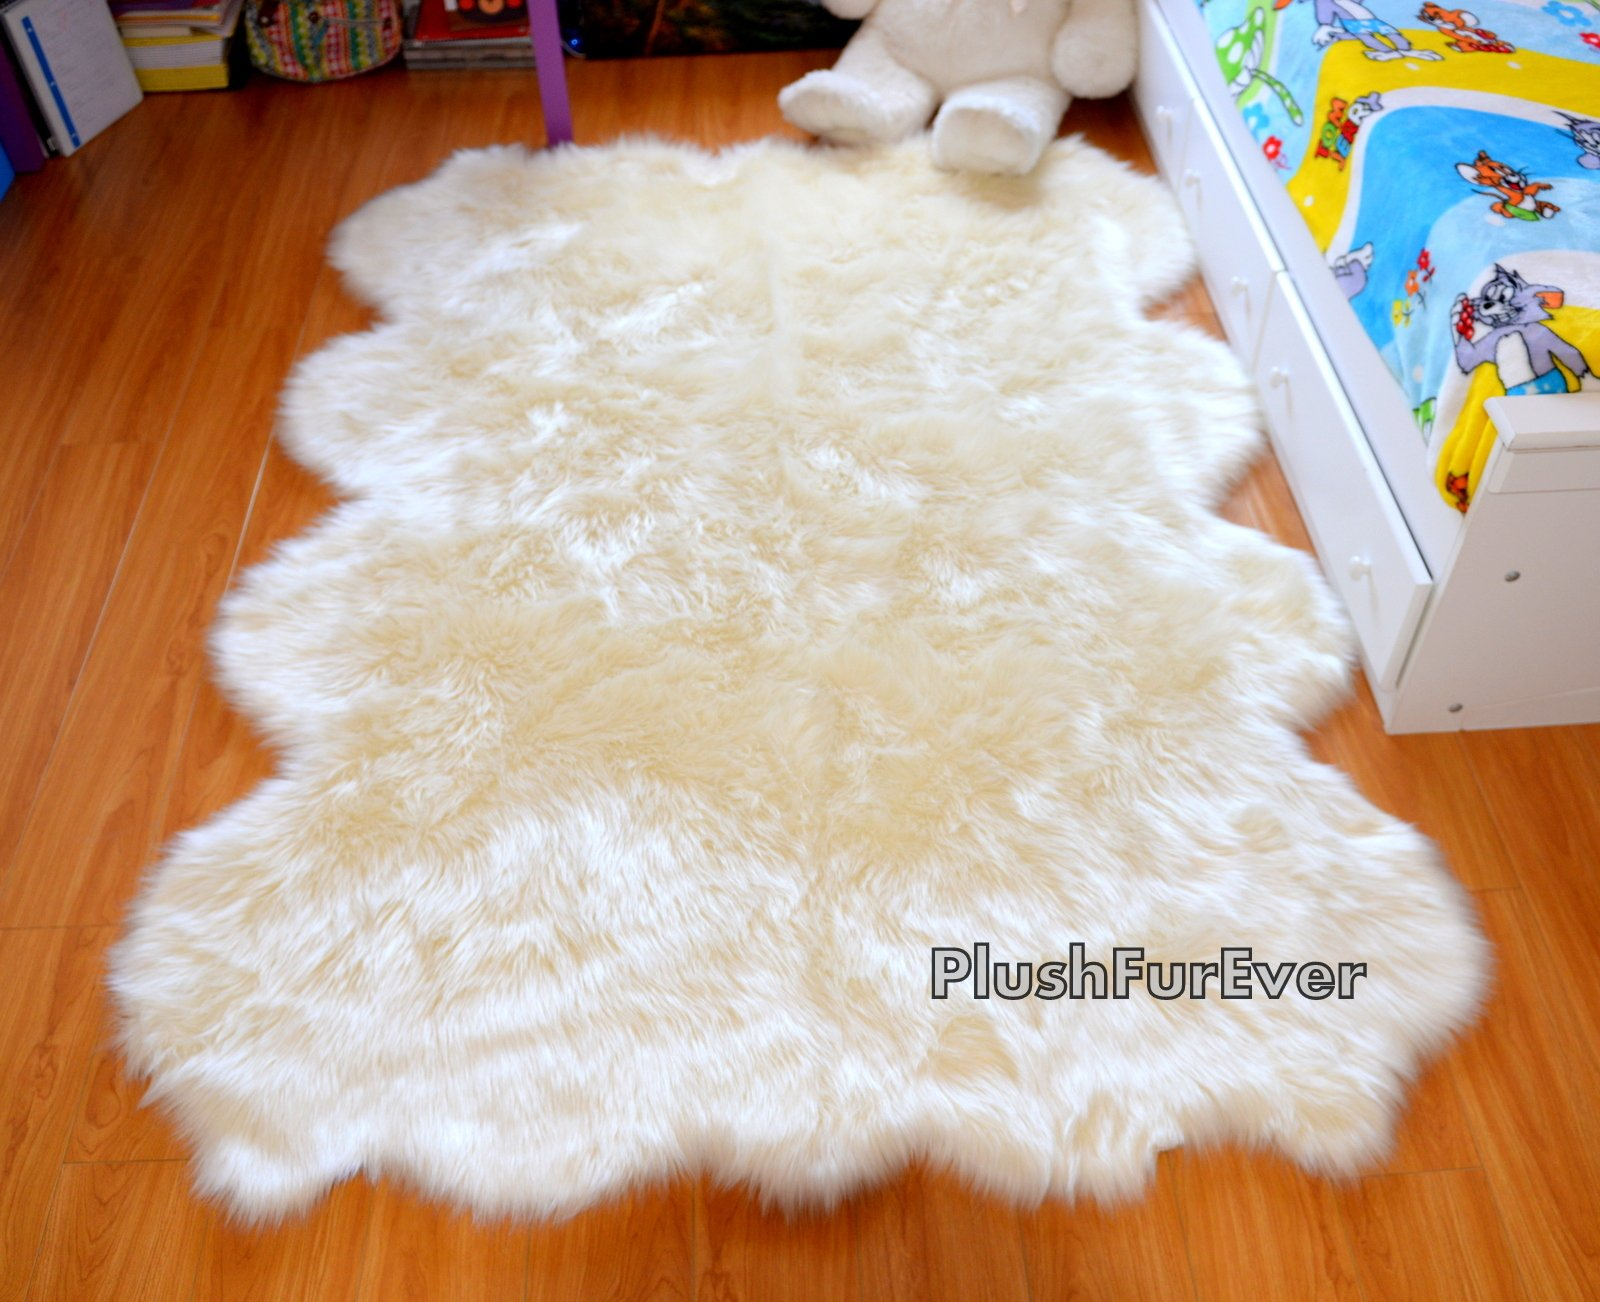 SC Love Collections Plush Sheepskin Octo Eight Pelts Warm White Shaggy Luxurious Home Accents Decor (5' x 7' feet) by Fur Accents (Image #2)